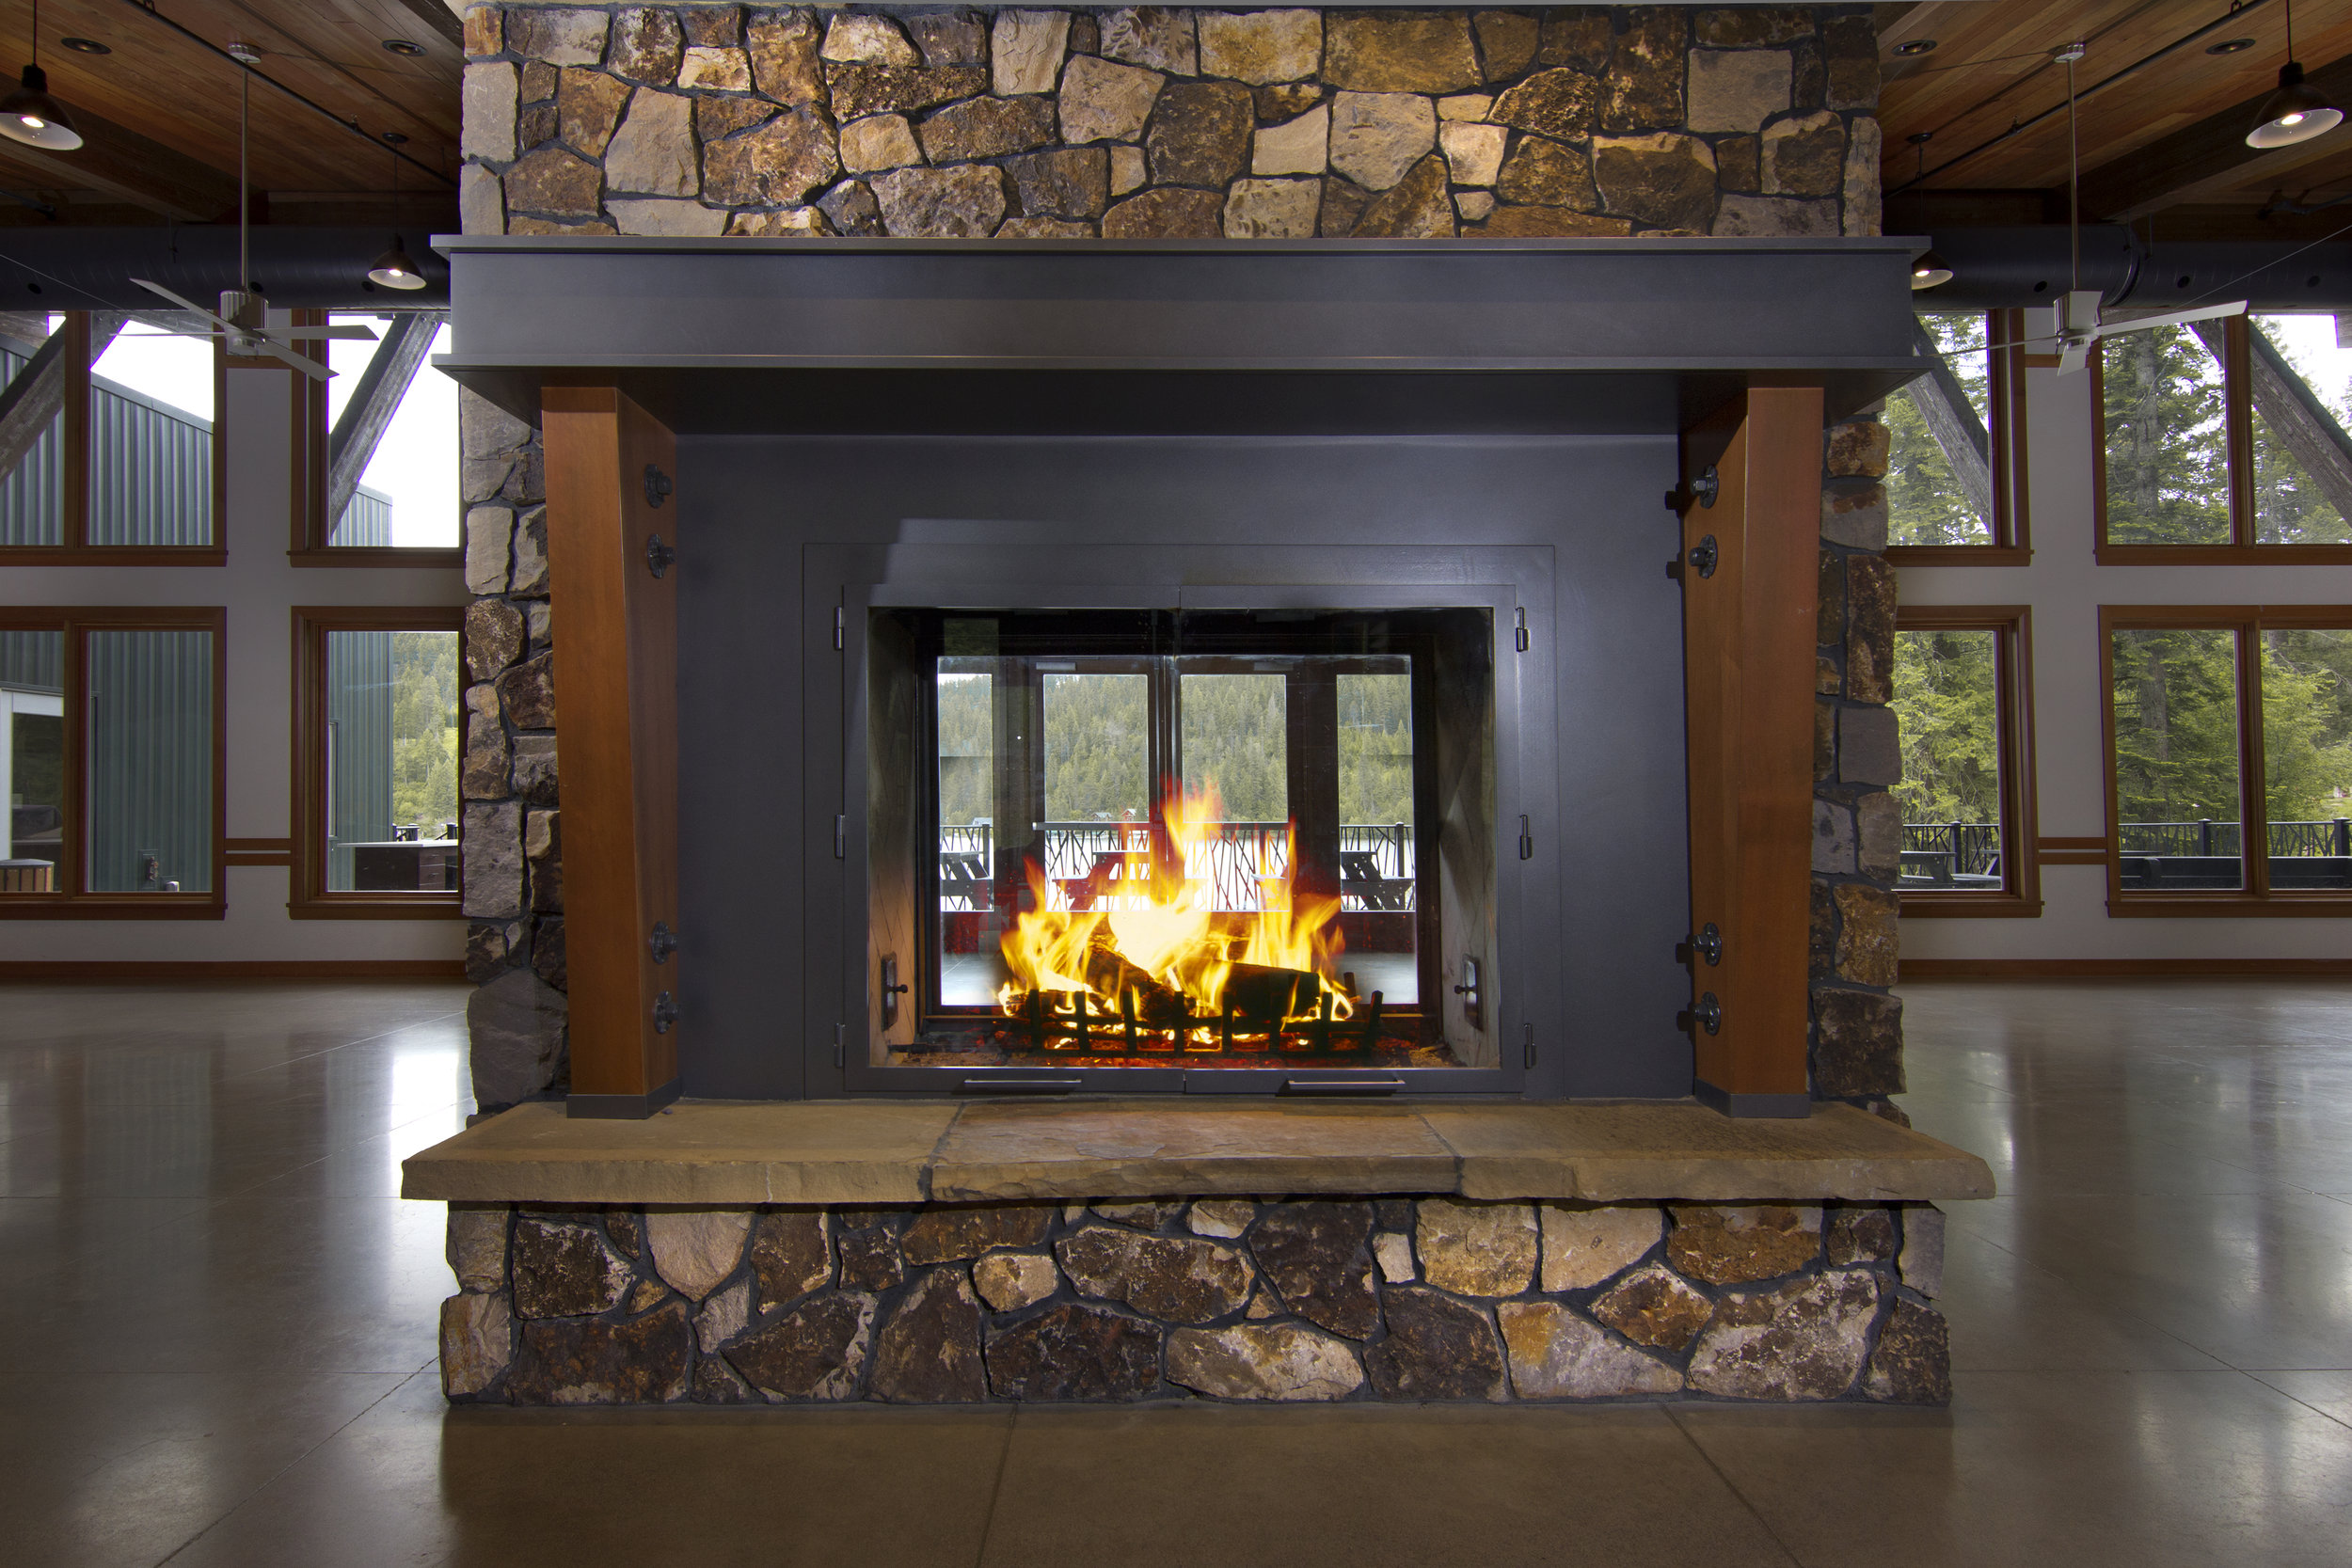 Girls Scouts Fireplace.jpg